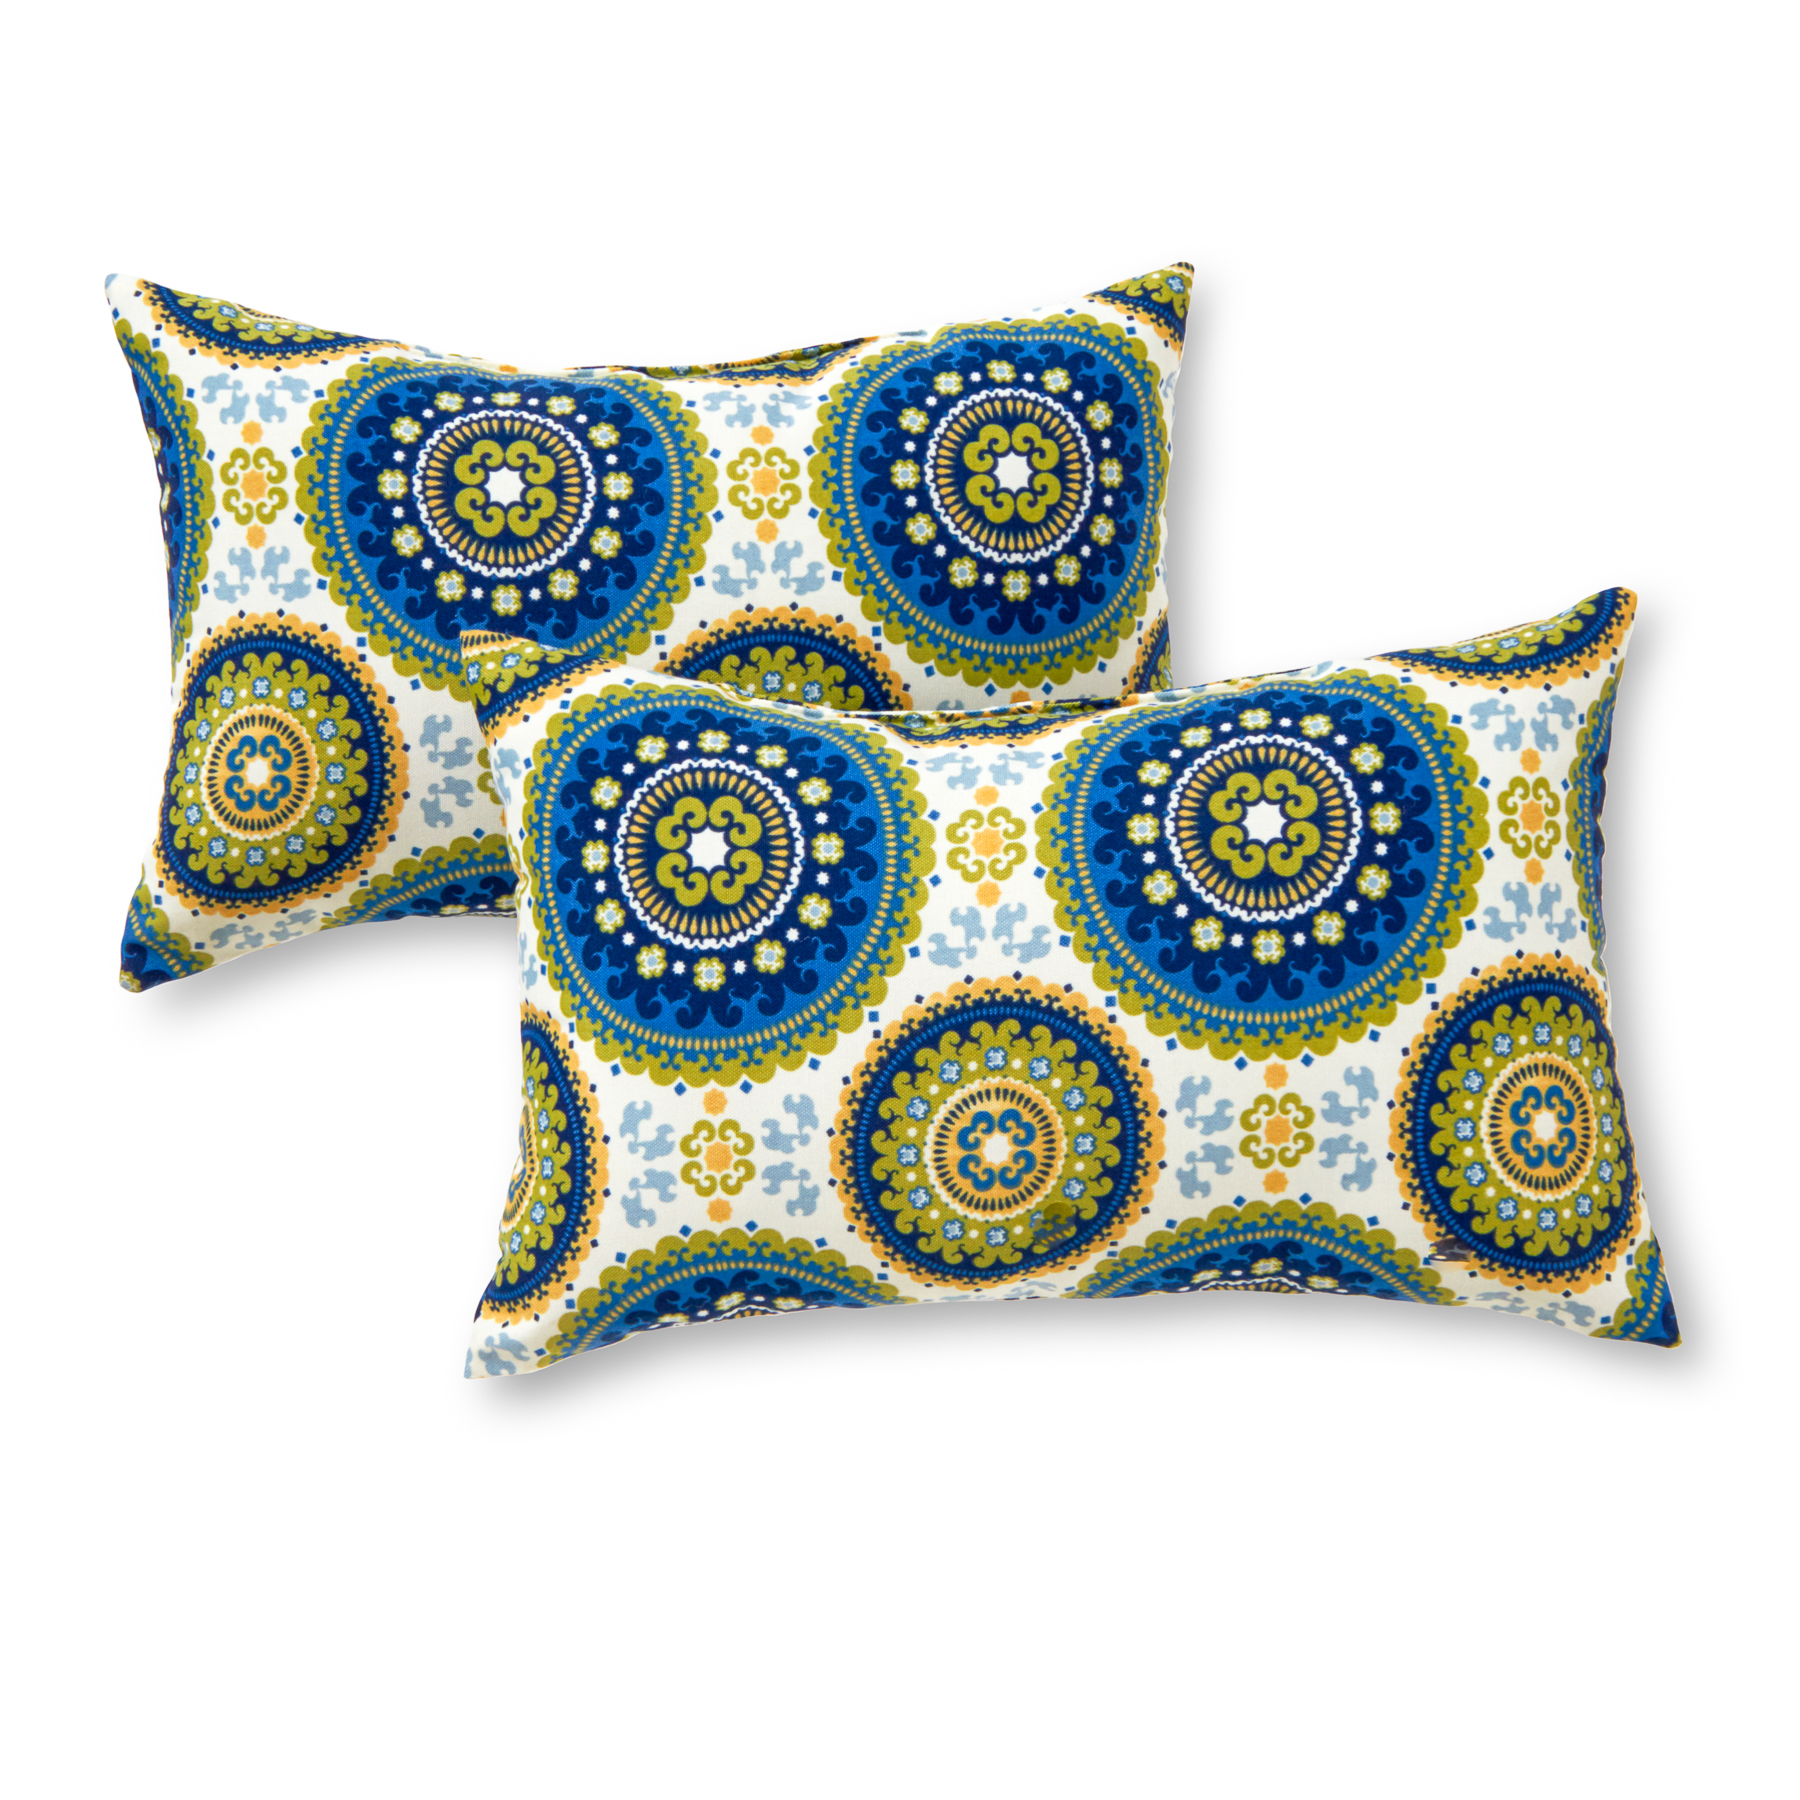 Medallion 19 x 12 in. Outdoor Rectangle Accent Pillow, Set of 2